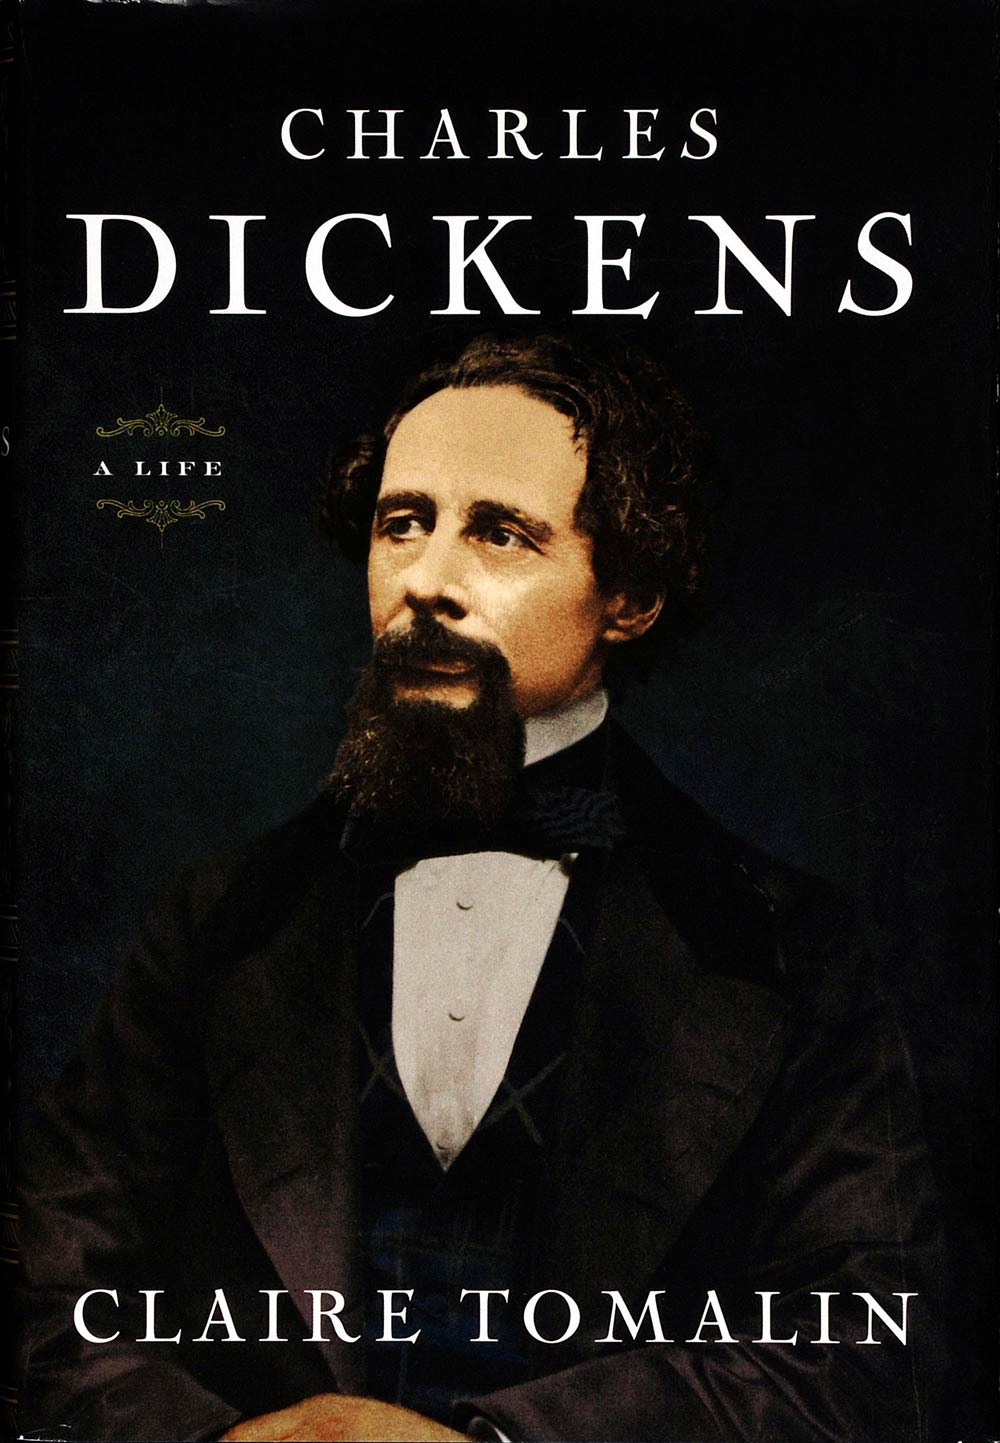 Claire Tomalin. Charles Dickens: A Life. New York: The Penguin Press, 2011